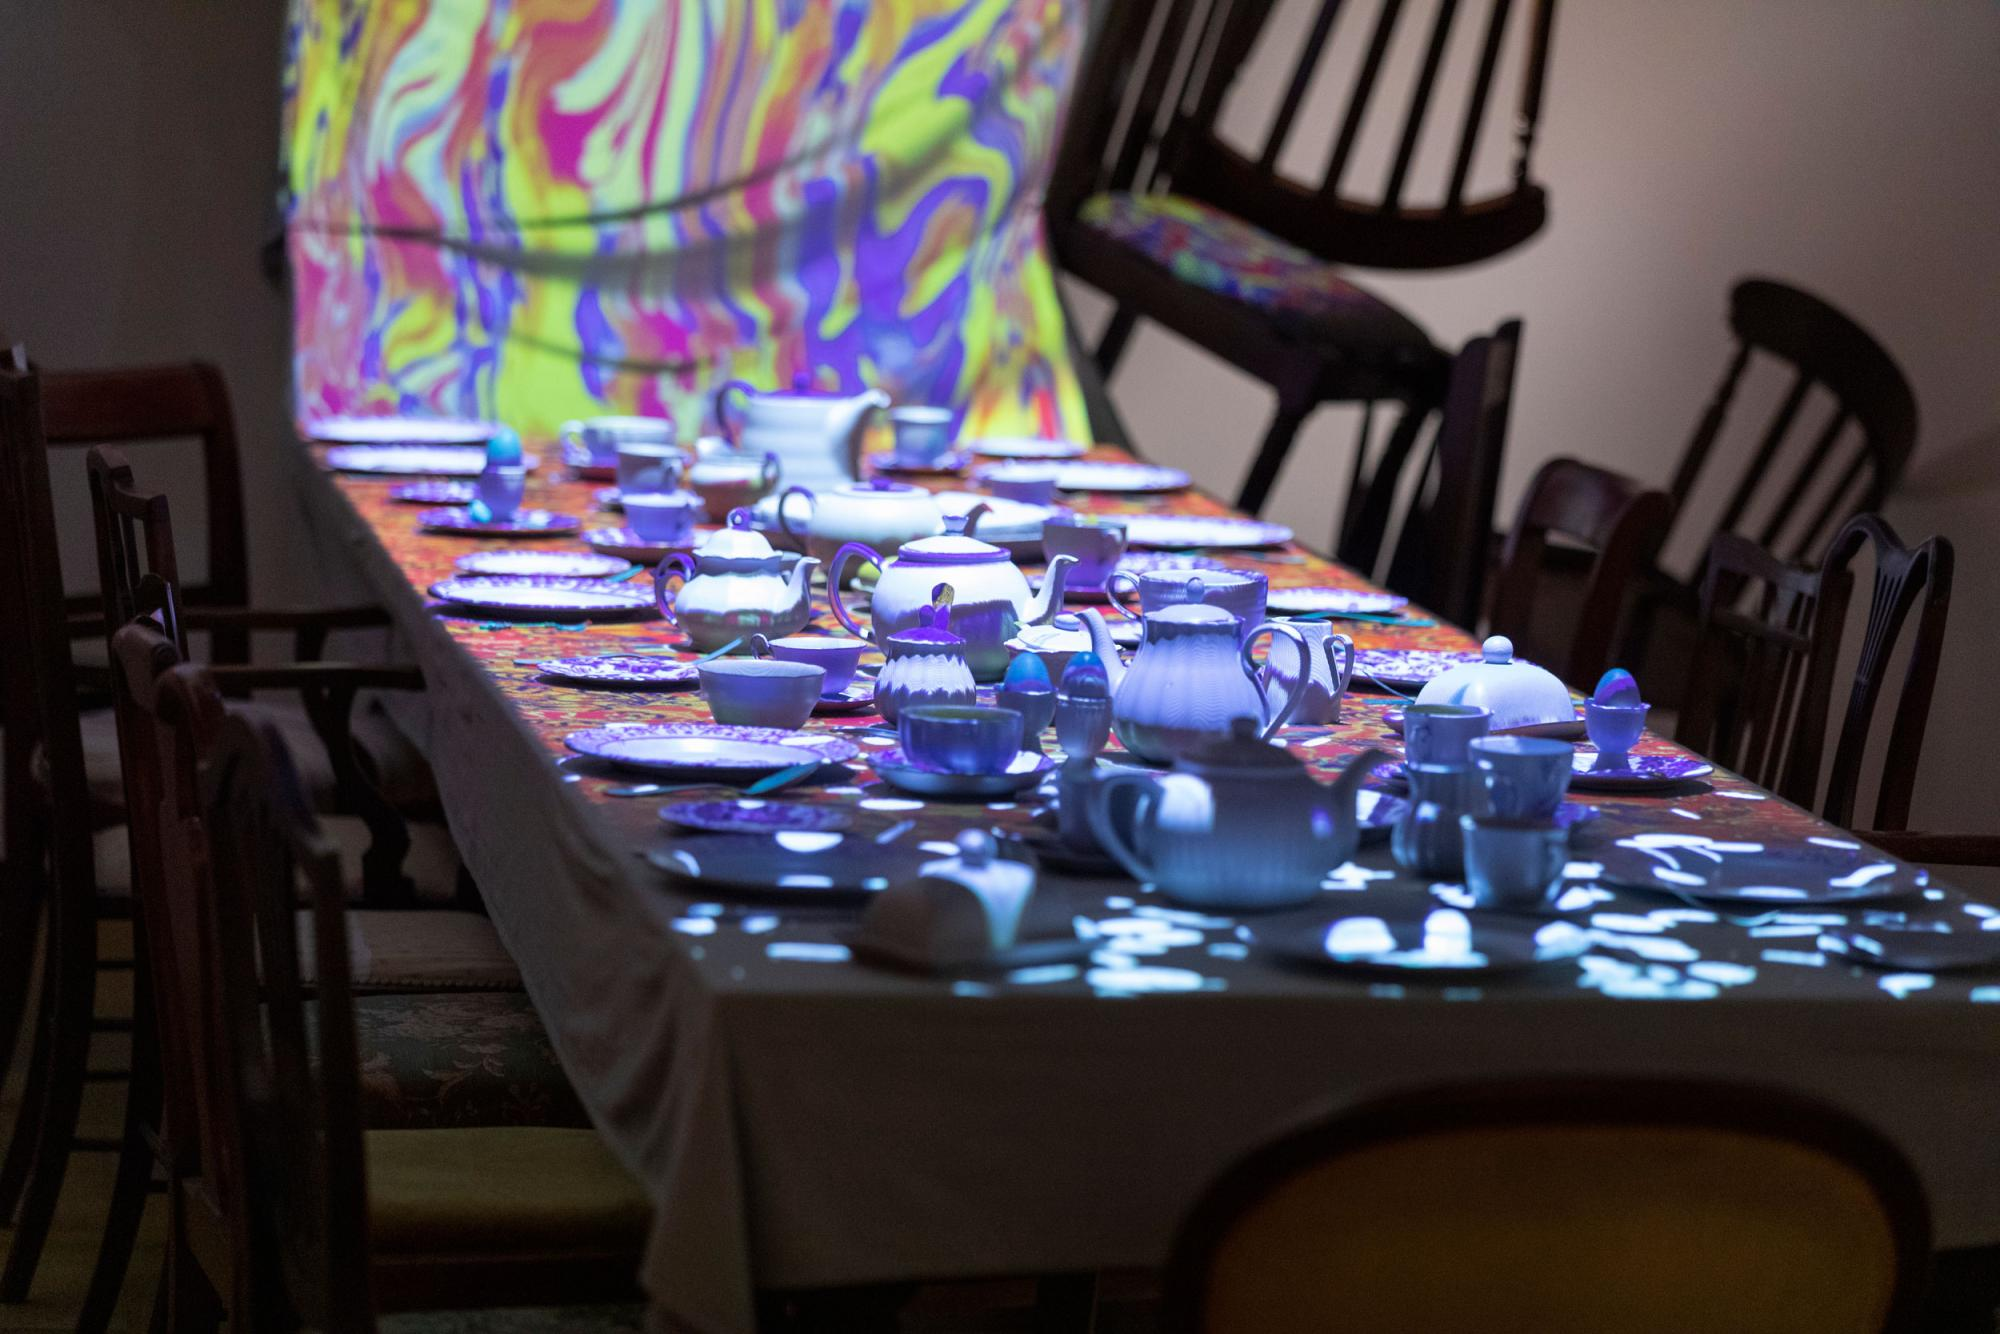 Alice-Curiouser-and-Curiouser,-May-2021,-Installation-Image-(c)-Victoria-and-Albert-Museum,-London-(35).jpg